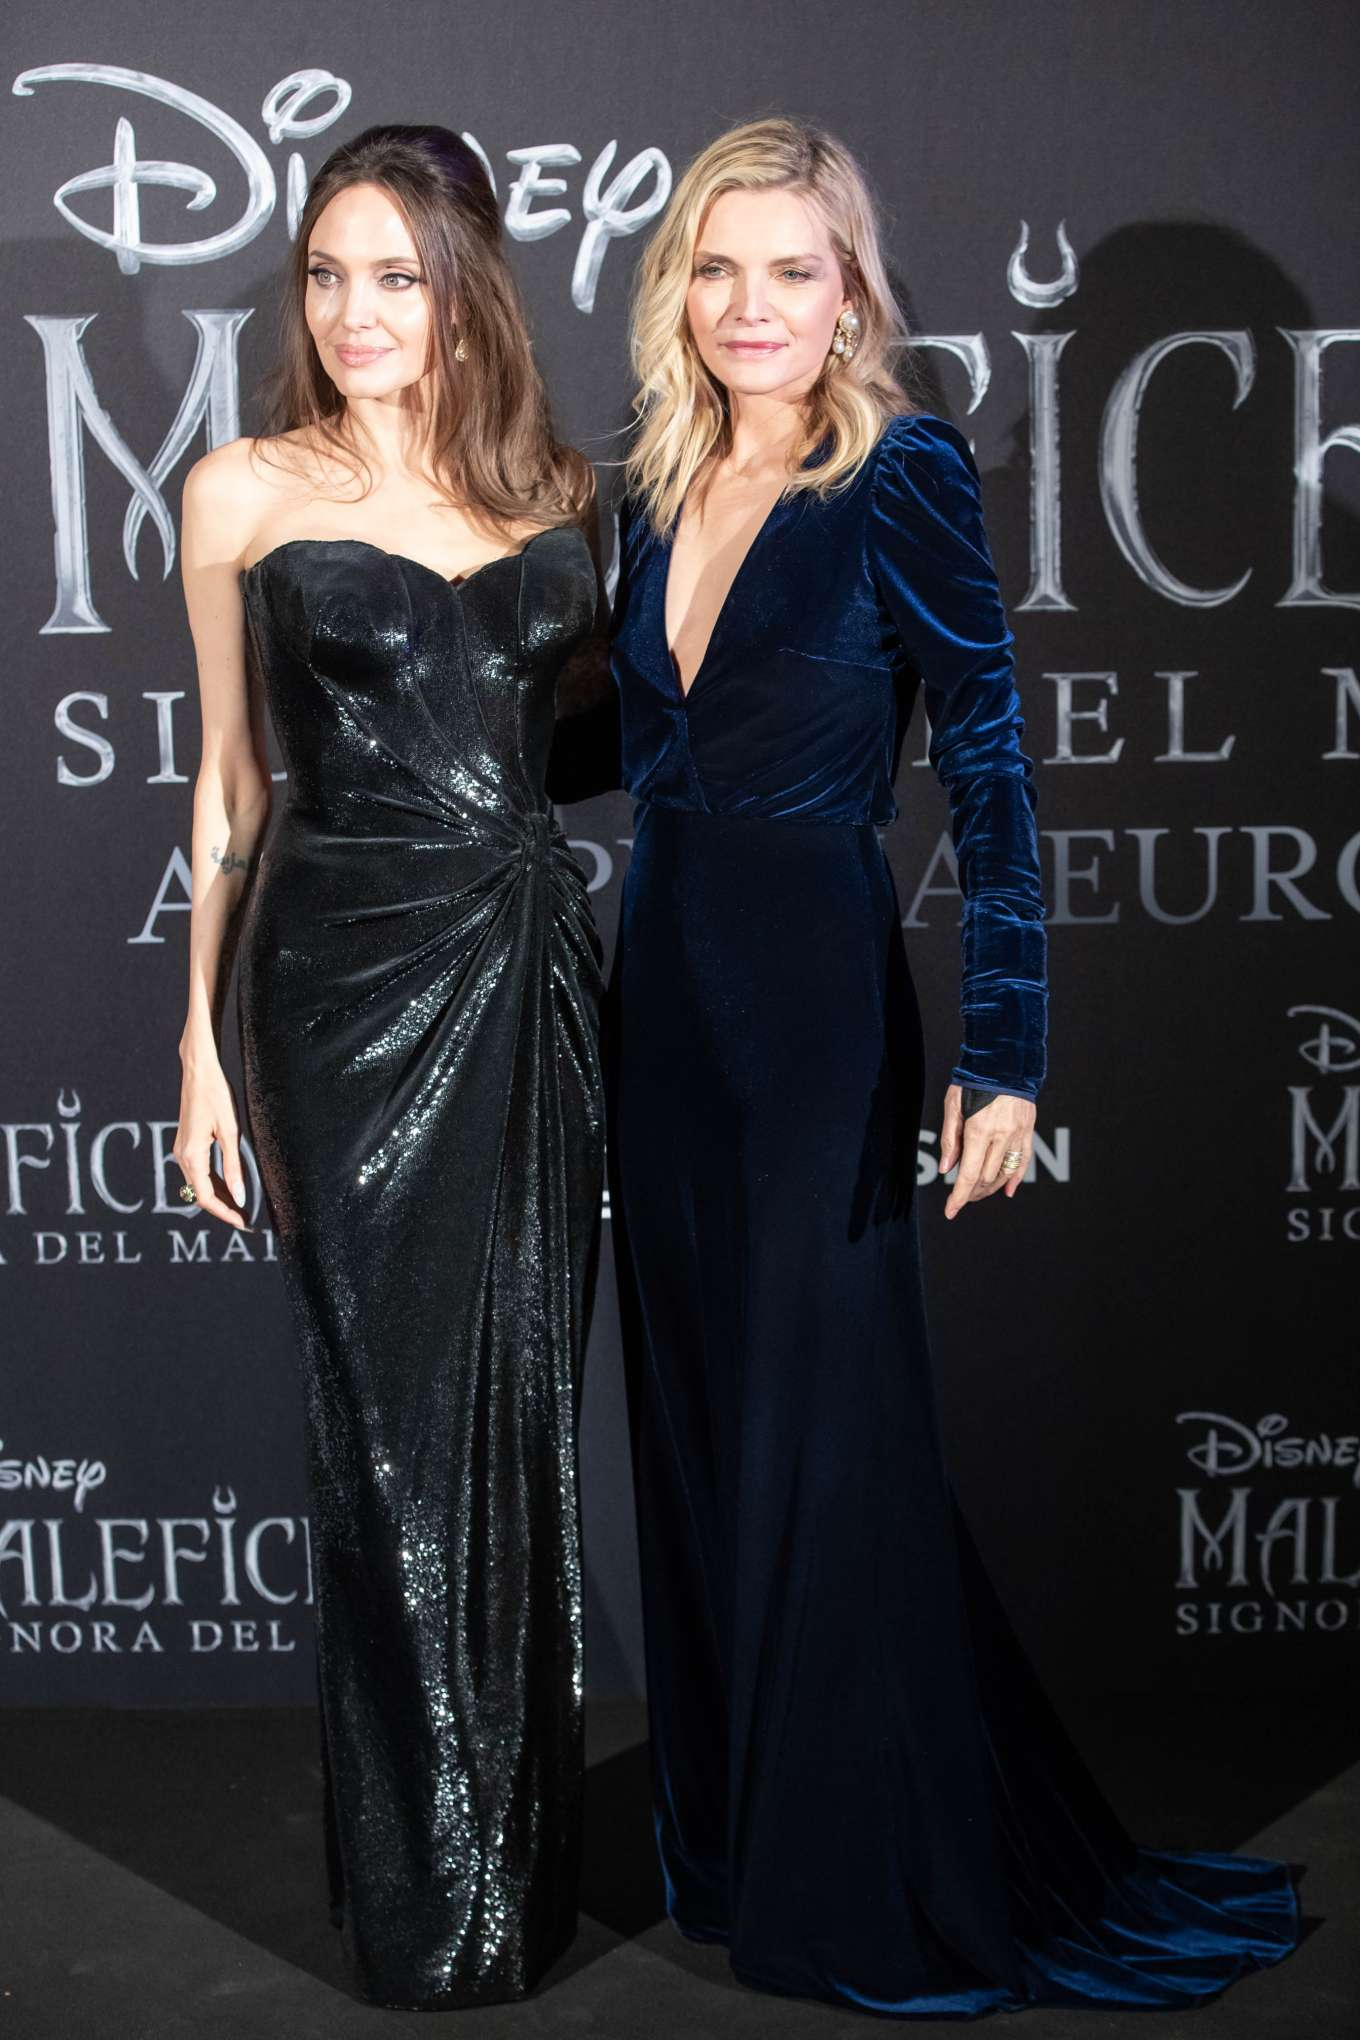 Michelle Pfeiffer 2019 : Michelle Pfeiffer – Maleficent: Mistress Of Evil Premiere in Rome-01